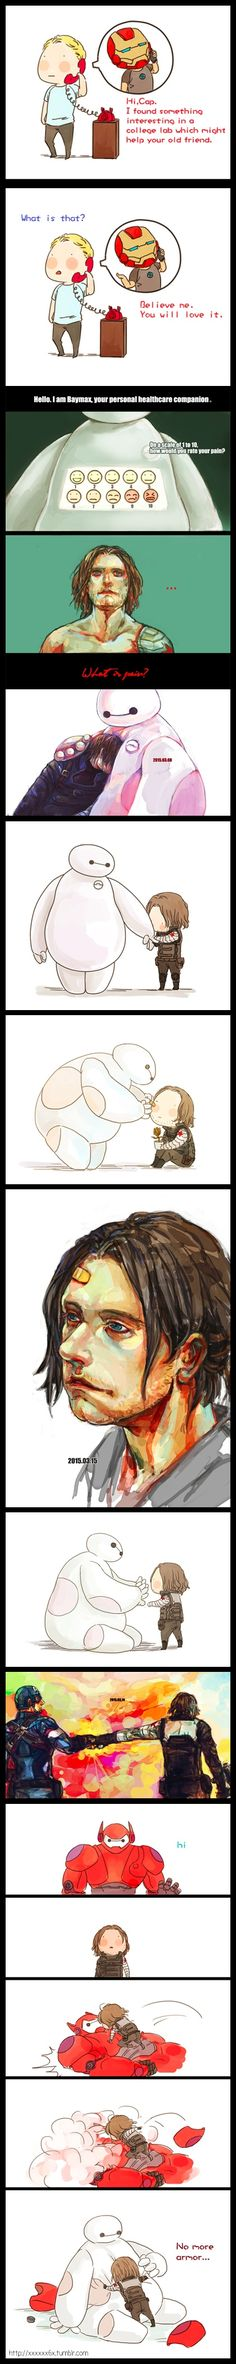 Bucky Barnes and Baymax || by xxxxxx6x || #fanart #crossover || See source link for animations! | BUCKY NEEDS A BAYMAX SOMEBODY MAKE THIS CANON RIGHT NOW. | too sweet for words